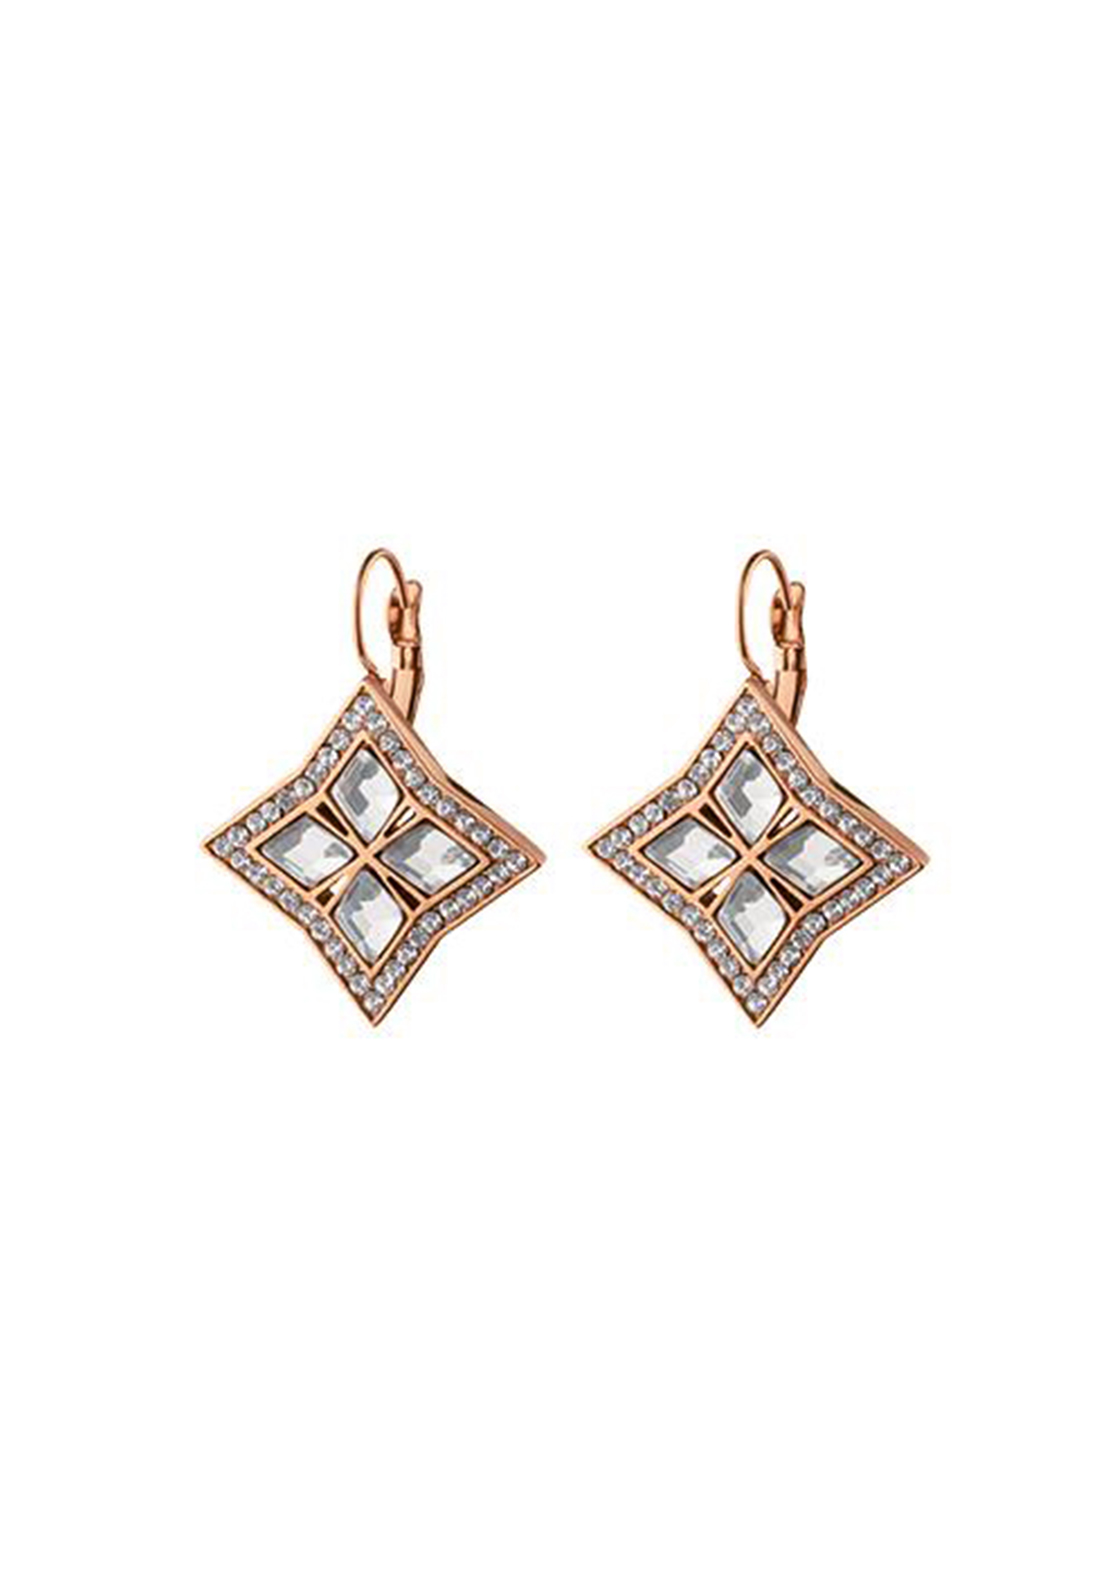 Dyrberg Kern Nina Crystal French Hook Earrings, Rose Gold